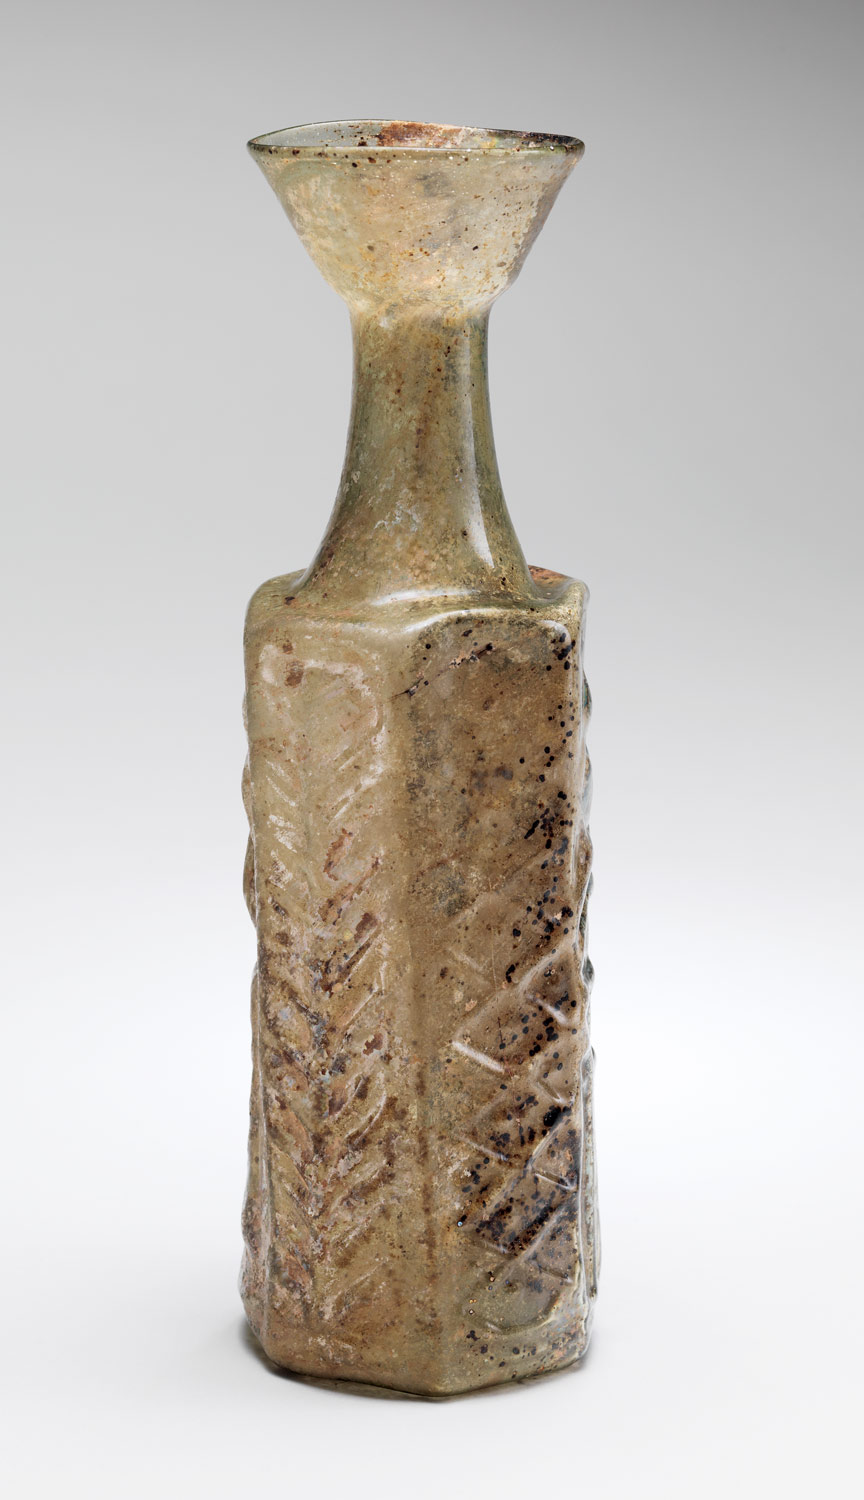 Yellow-Green Hexagonal Glass Bottle with a Stylite Saint